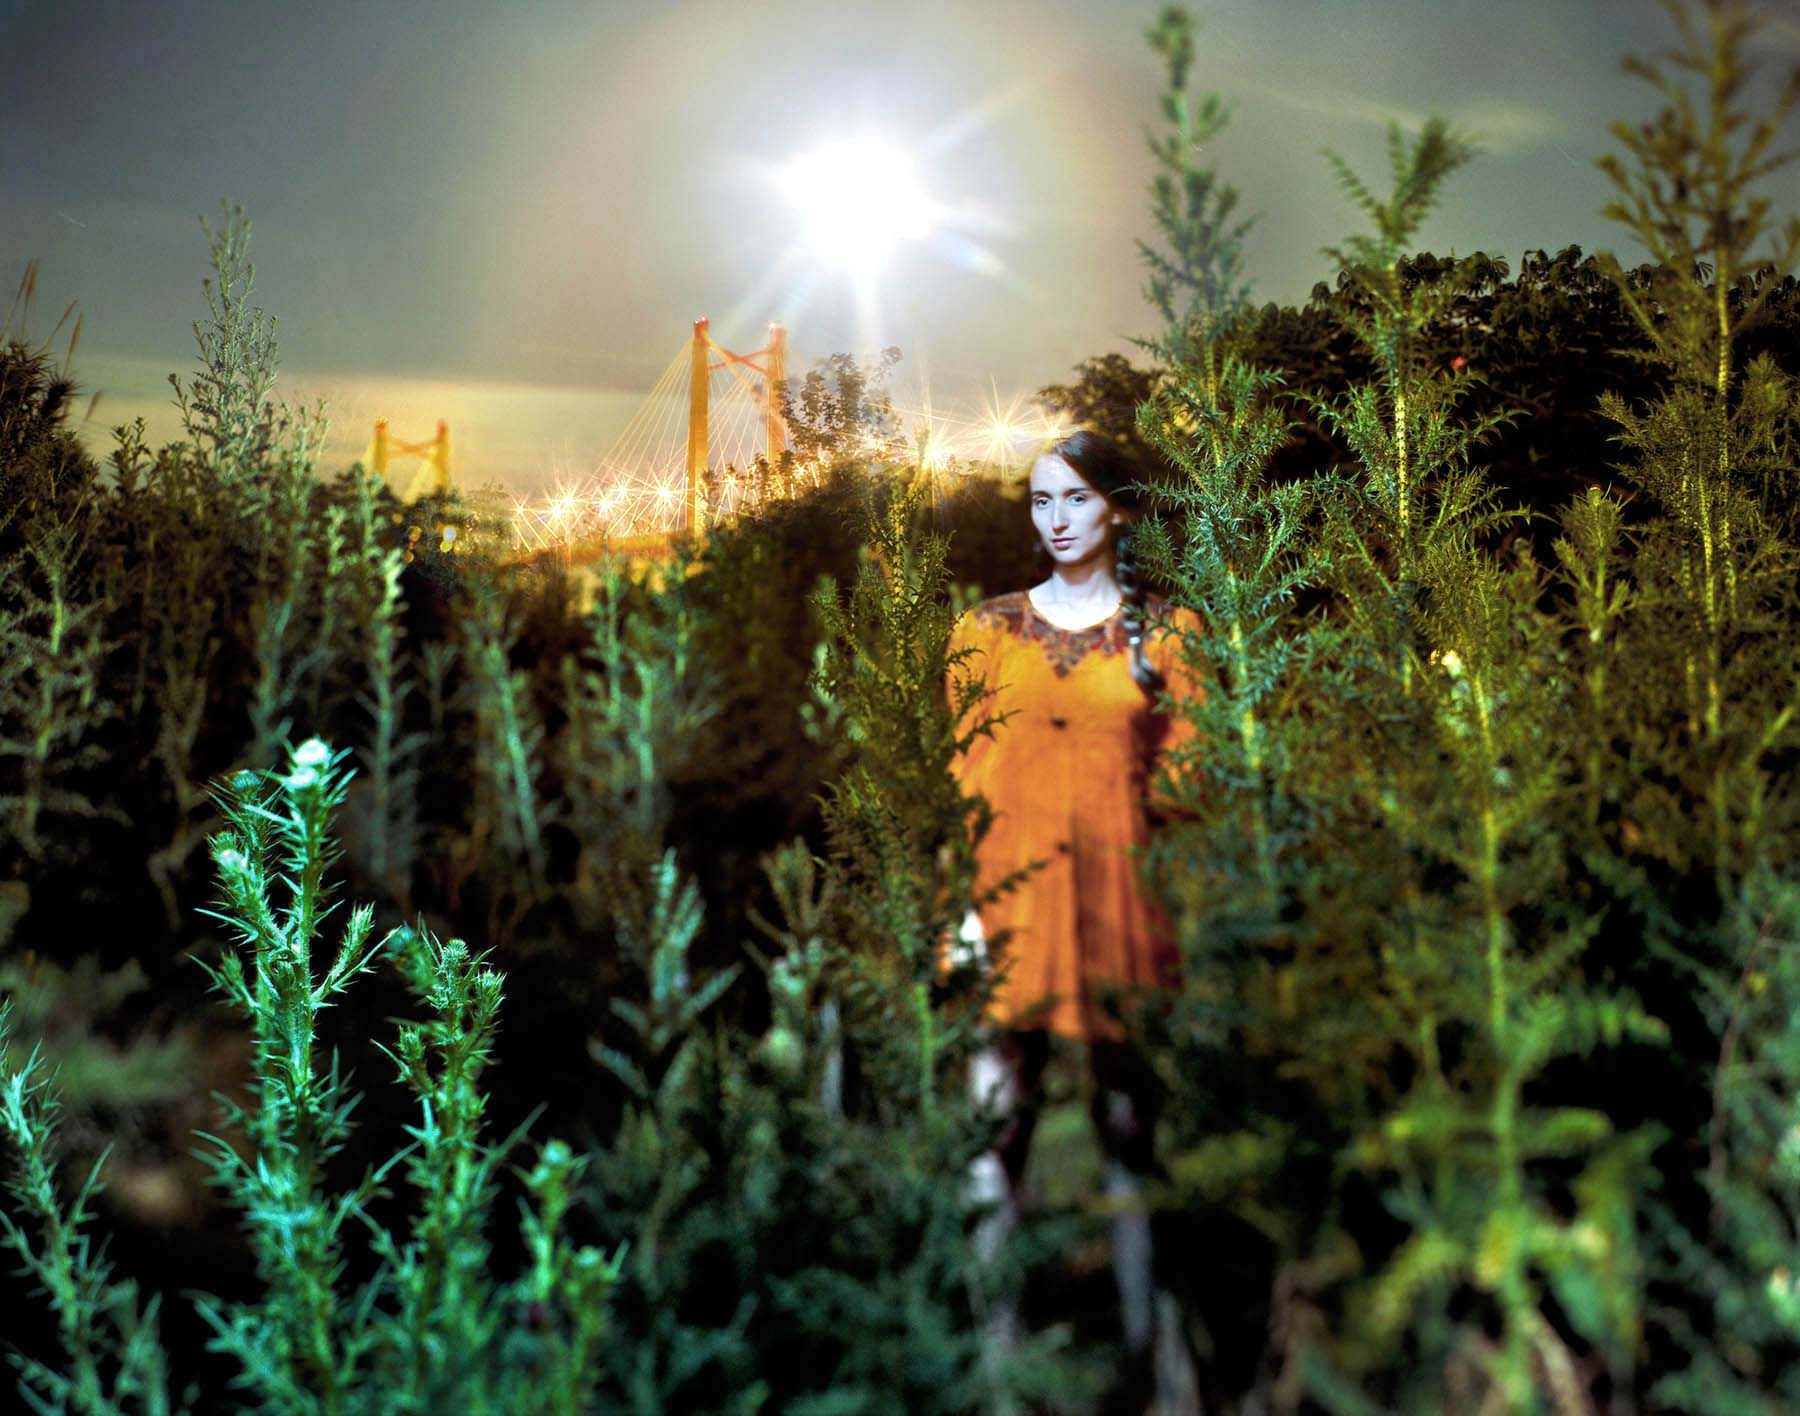 Roland Paiva's Radiance from the series La Creciente